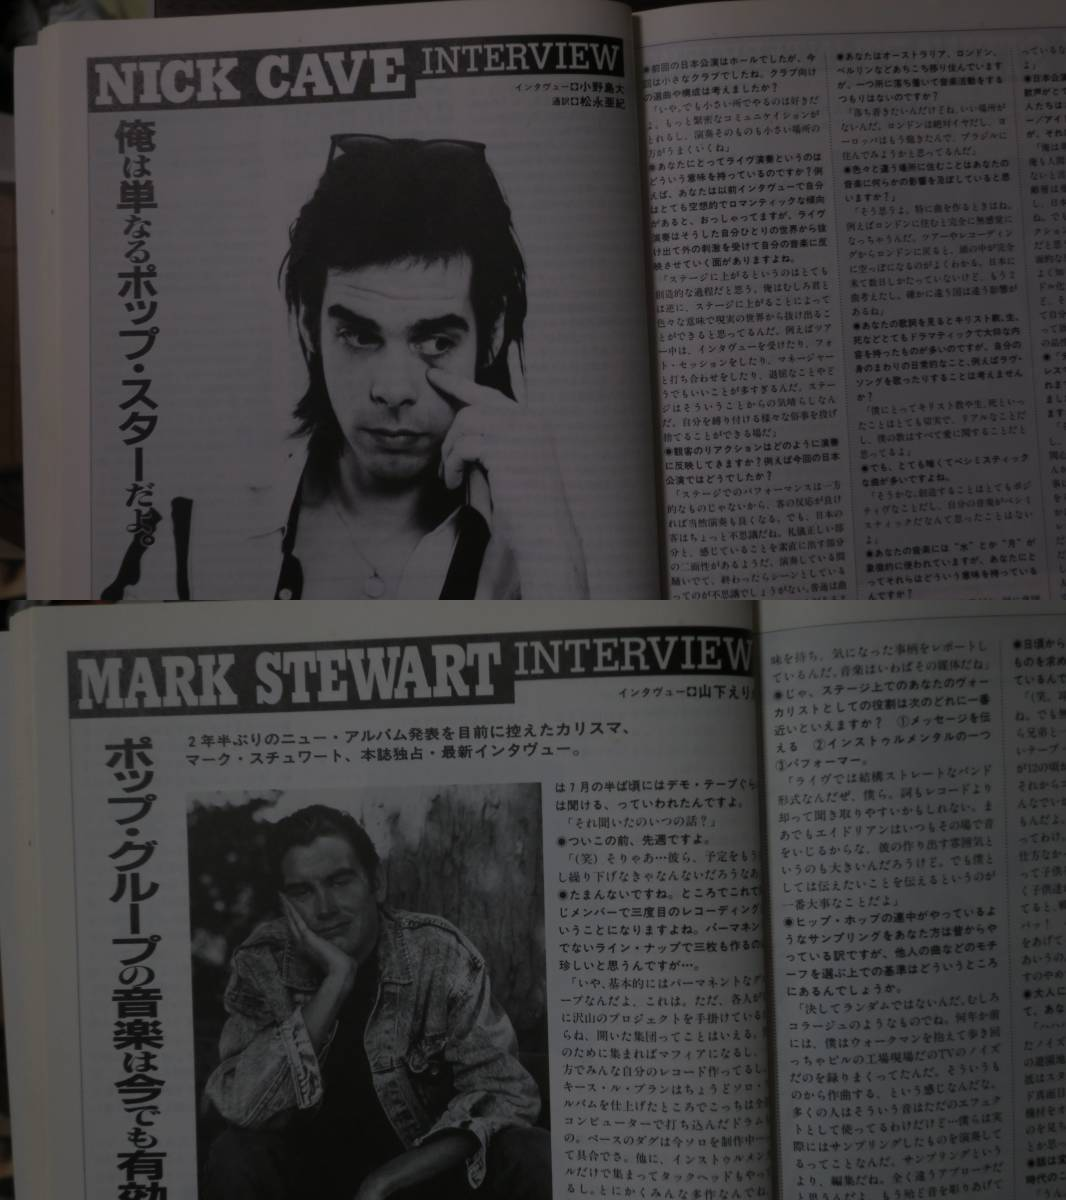 newswave21THE CURE小野島大PETE TOWNSHEND/NICK CAVE/MARK STEWART/THE HOUSE OF LOVE/Guy Chadwick/Robert Smith/THE WHO/POP GROUP/NEU!_画像4